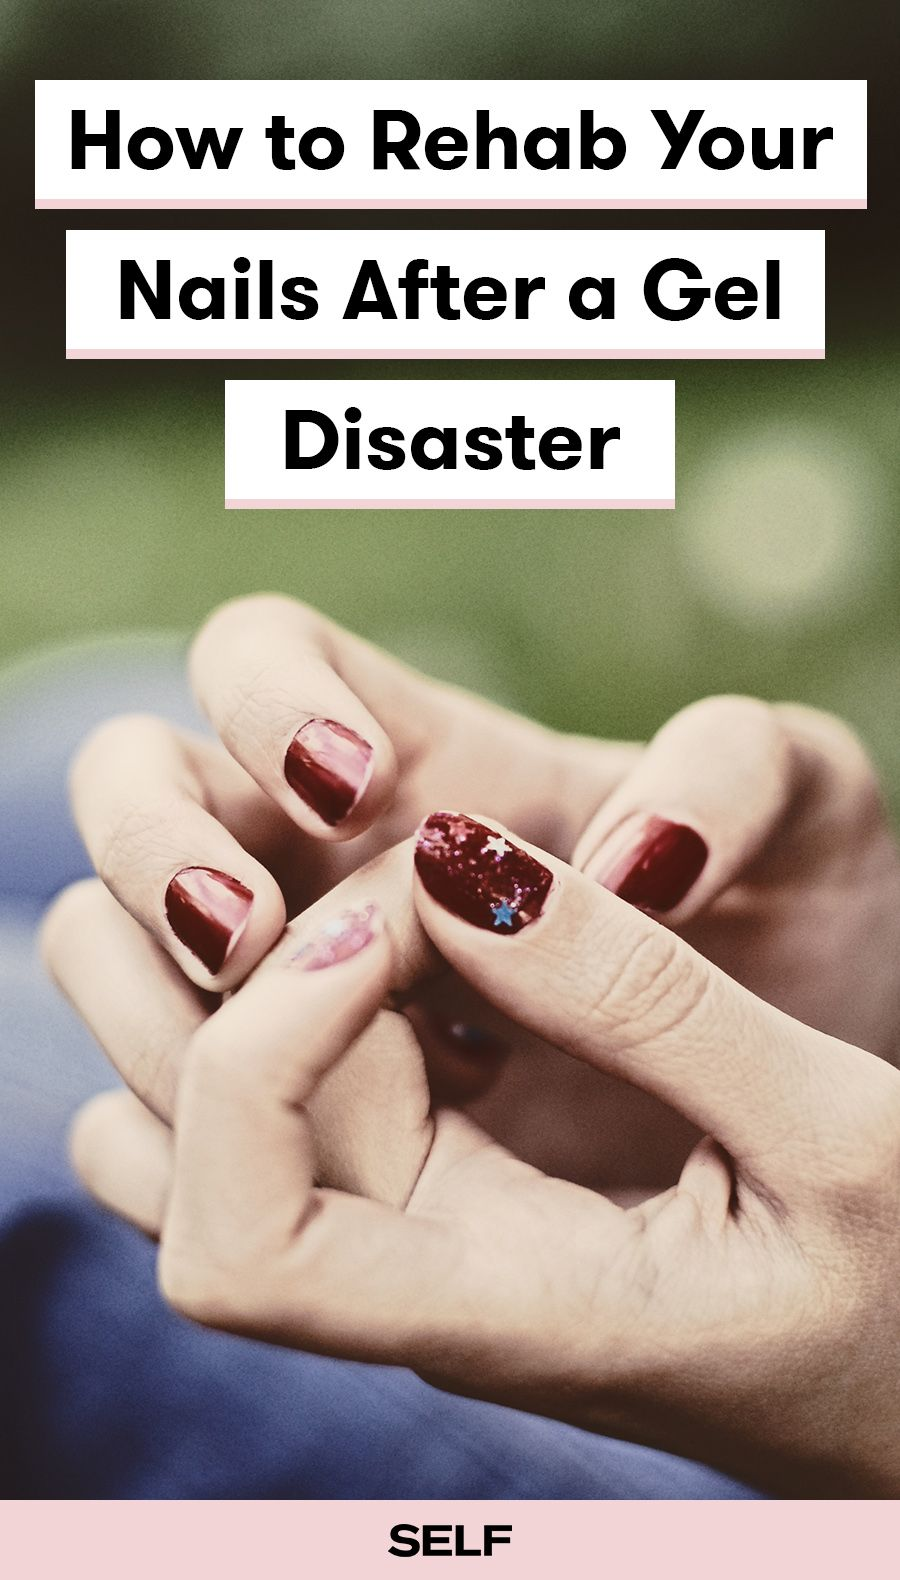 How To Rehab Your Nails After A Gel Disaster | Make up, Pedicure ...